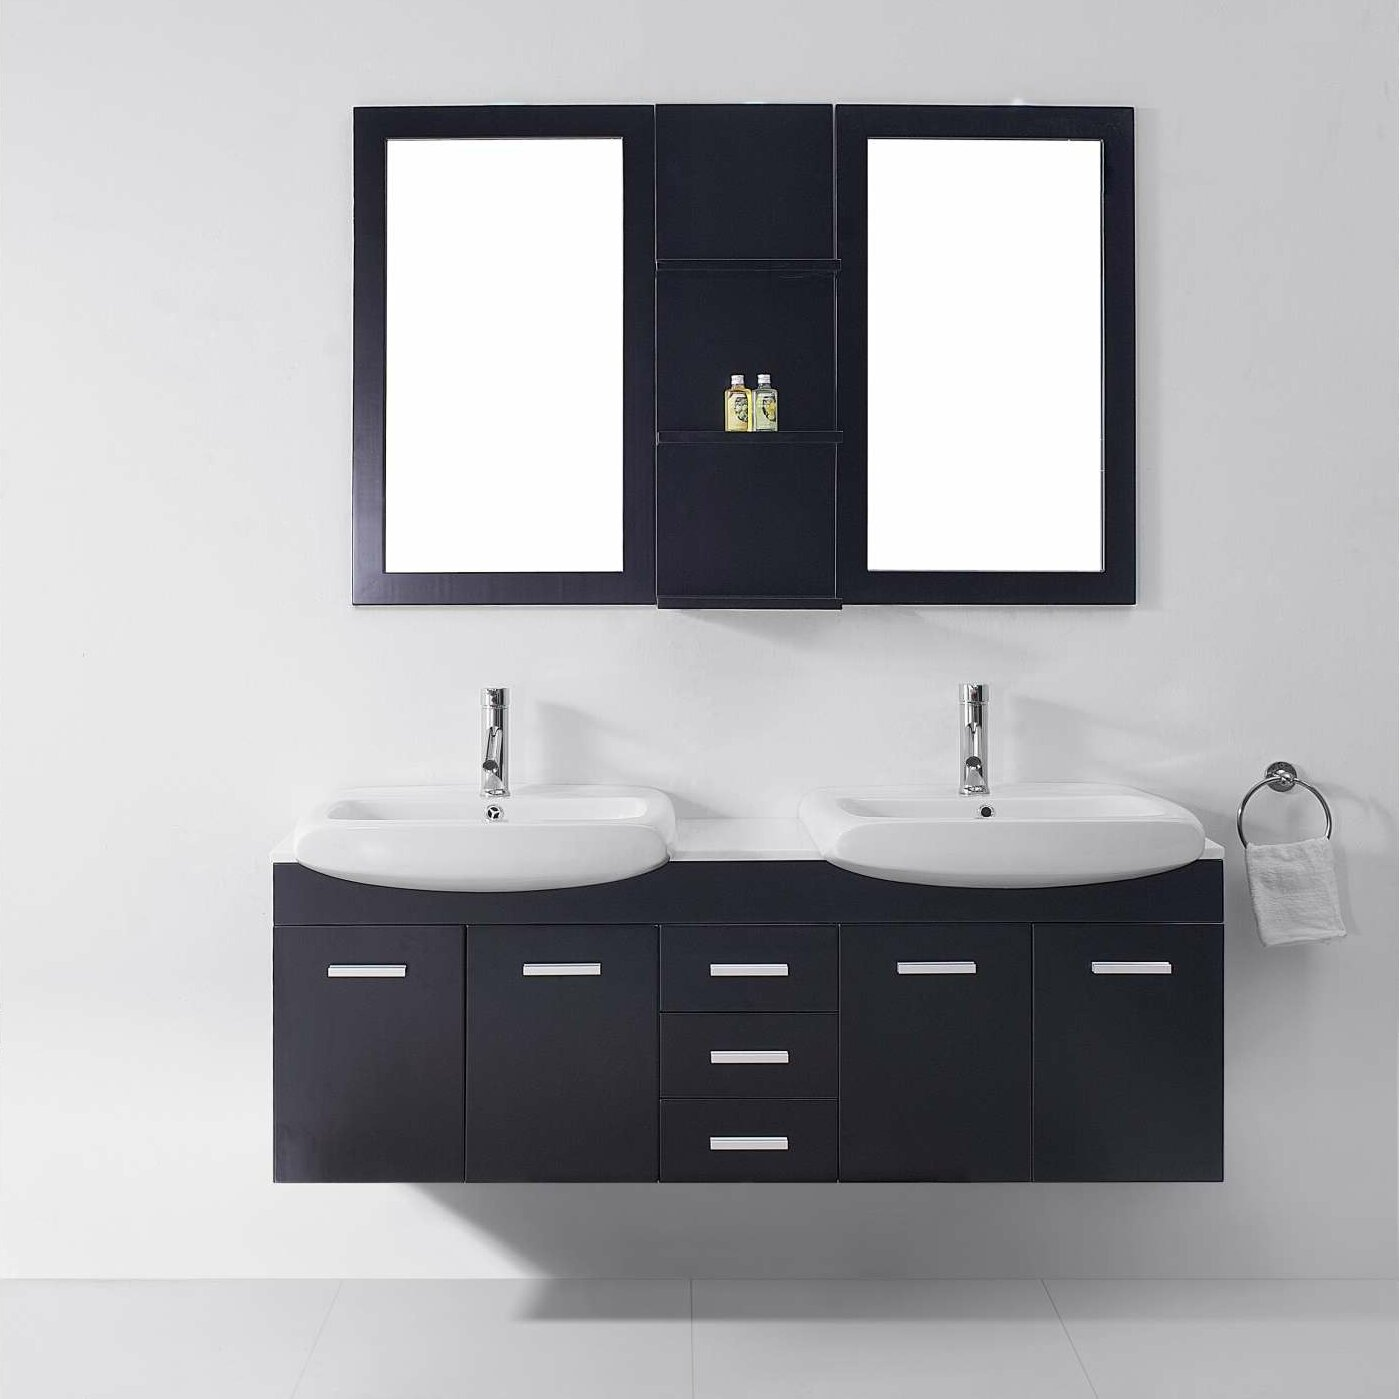 Virtu ultra modern series 59 double bathroom vanity set for Ultra modern bathroom